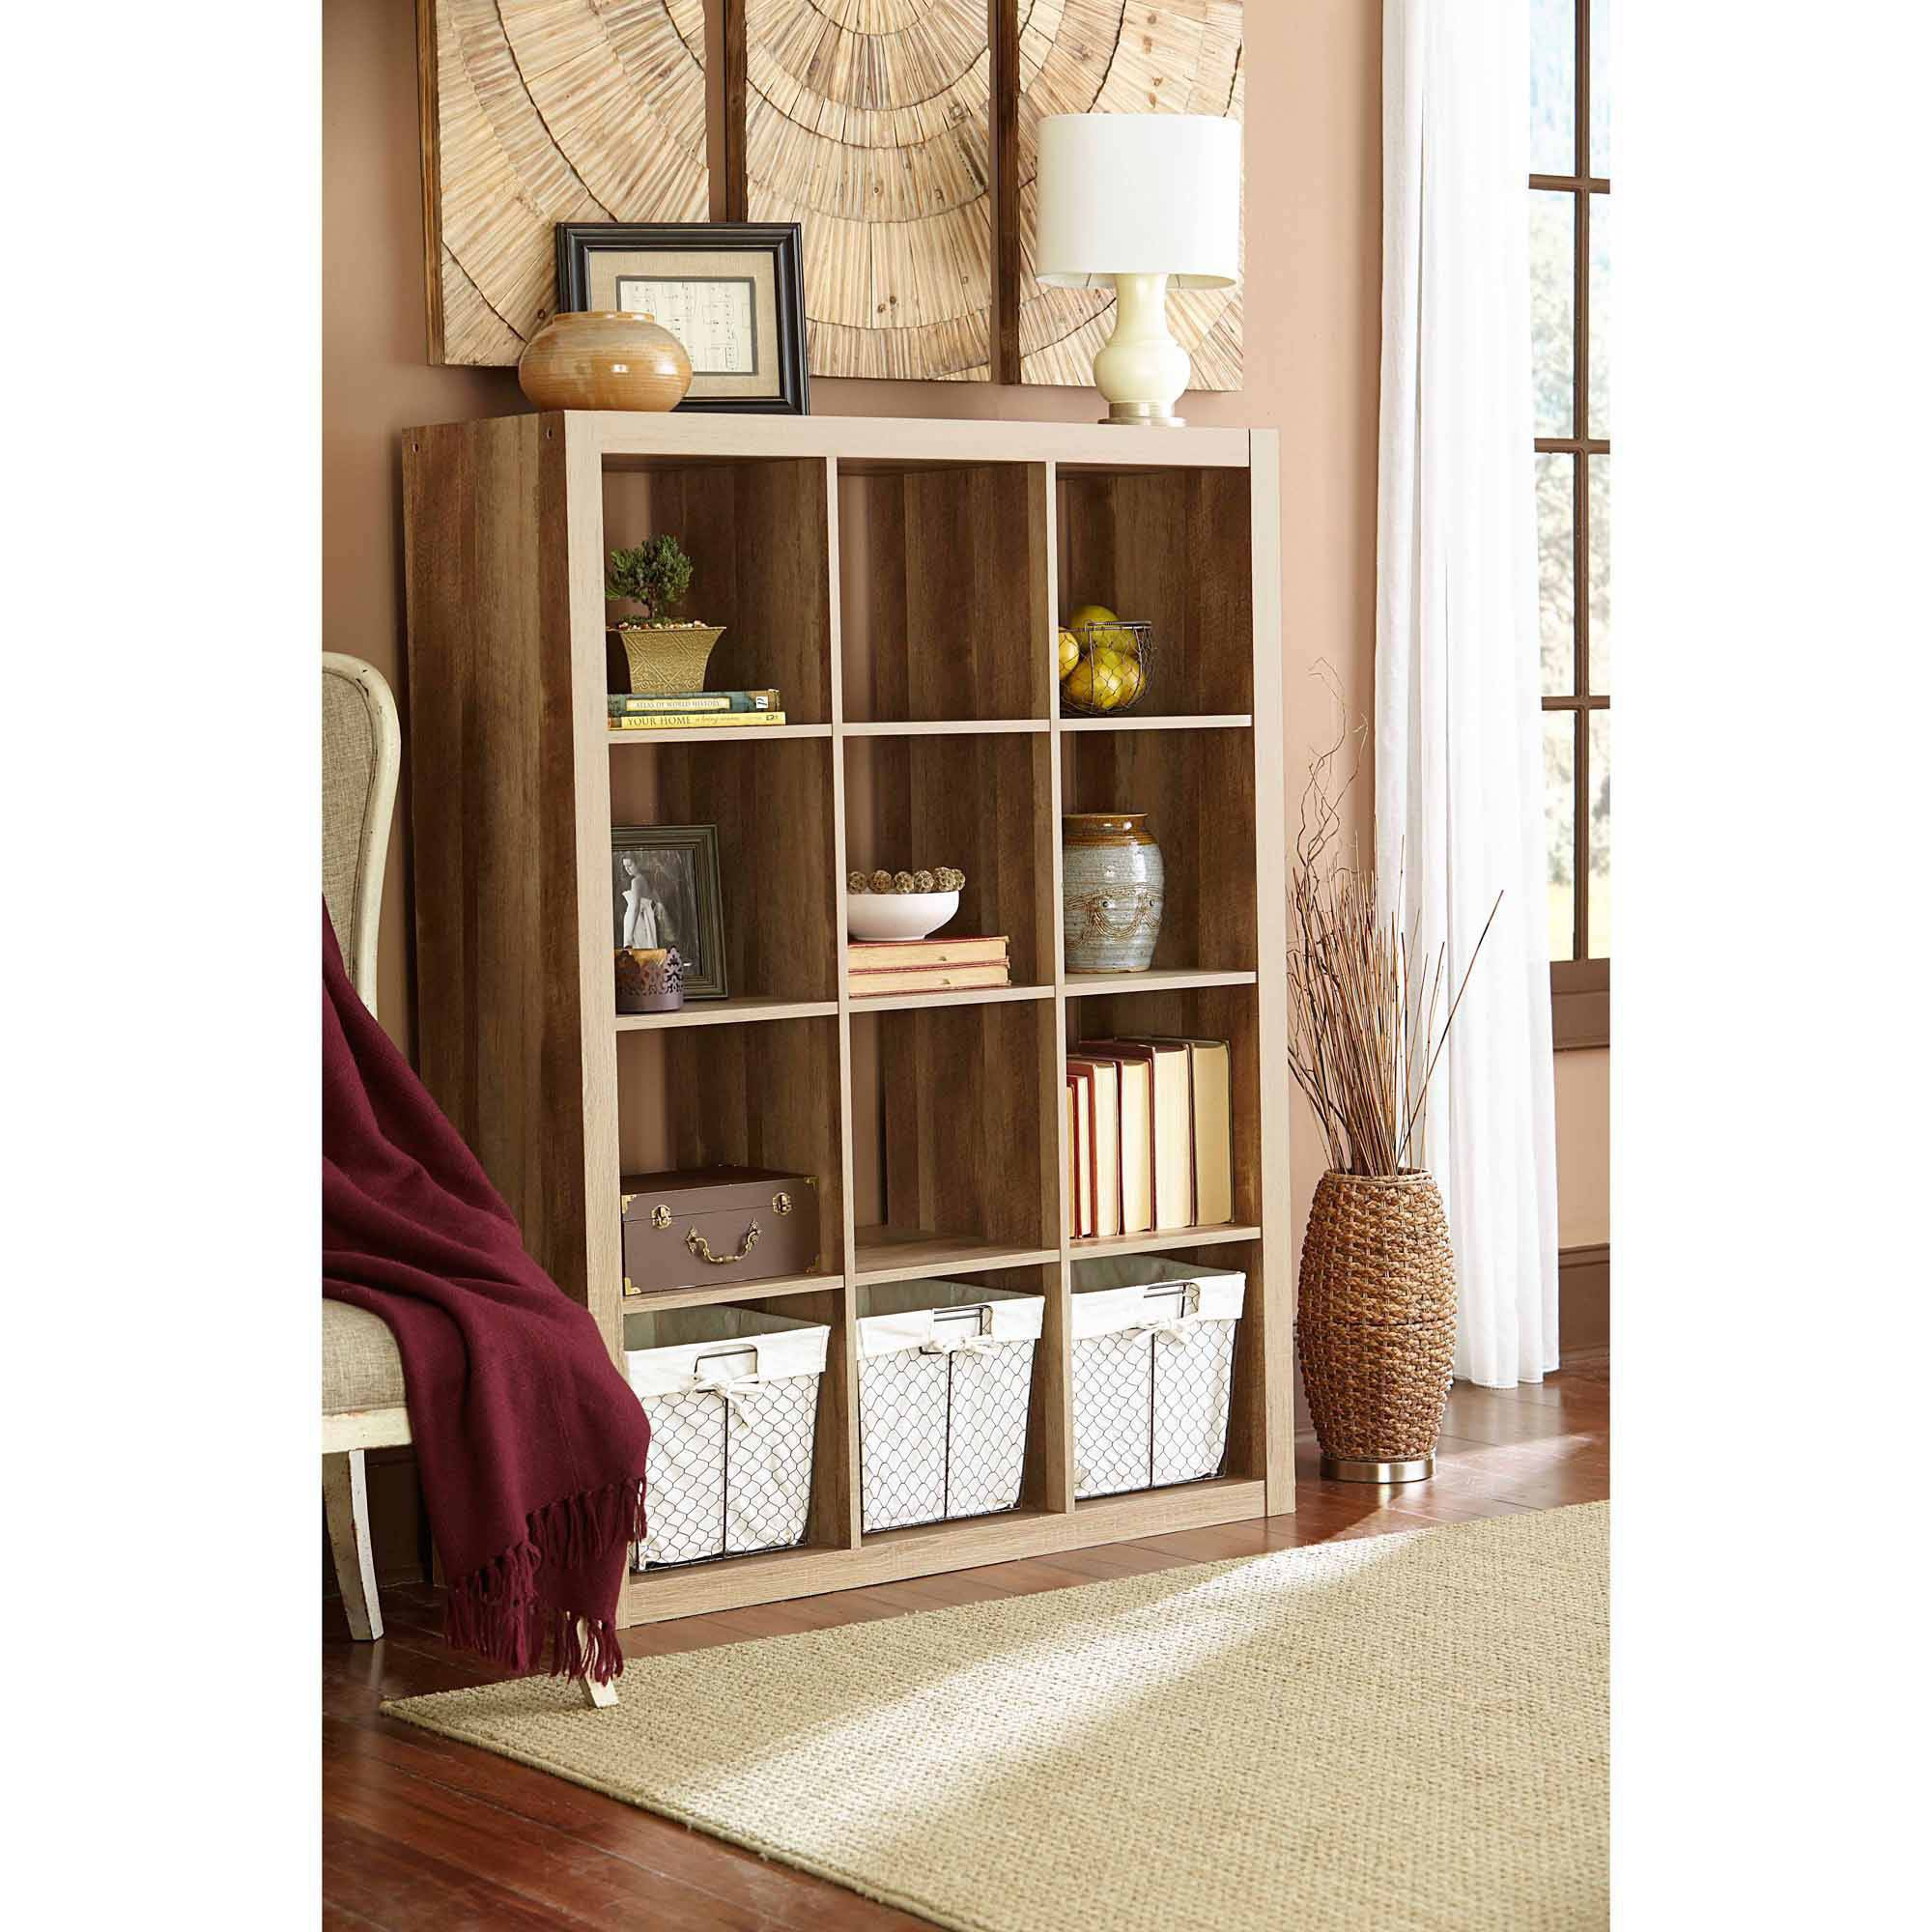 Better Homes and Gardens 12 Cube Storage Organizer Multiple Colors - Walmart.com  sc 1 st  Walmart & Better Homes and Gardens 12 Cube Storage Organizer Multiple Colors ...